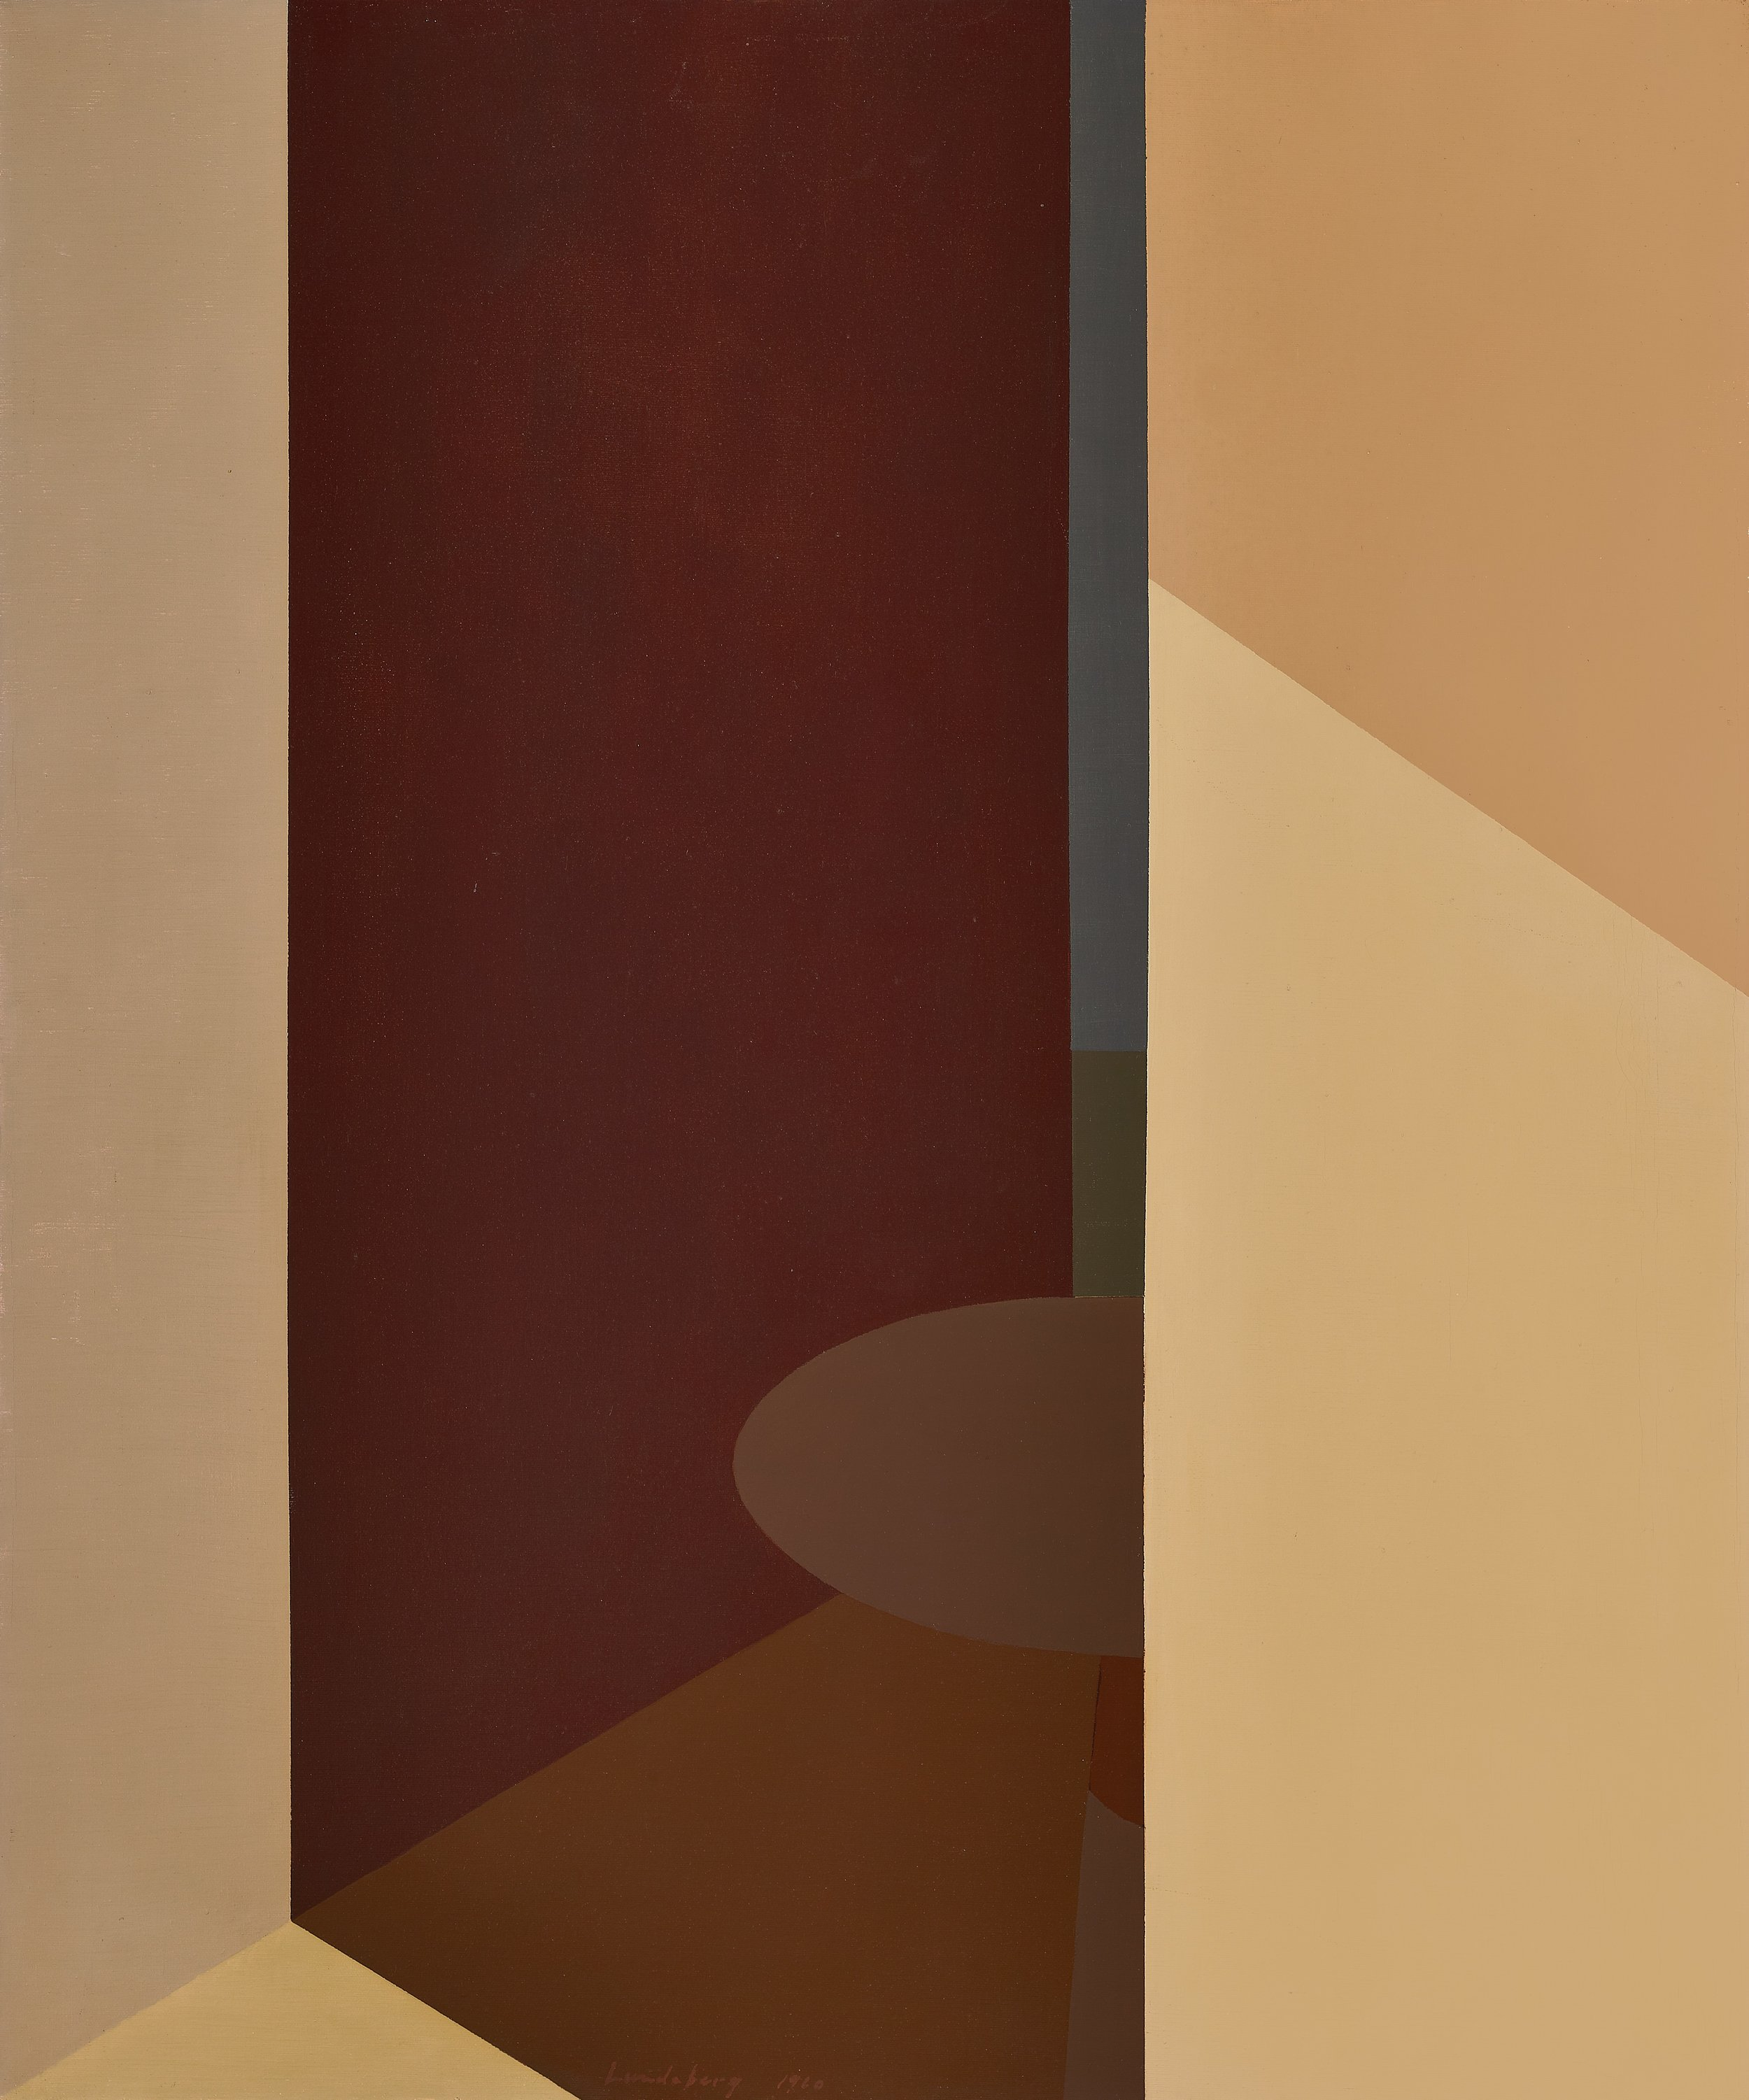 Day and Night , 1959-1960  oil on canvas 40 x 40 inches; 101.6 x 101.6 centimeters